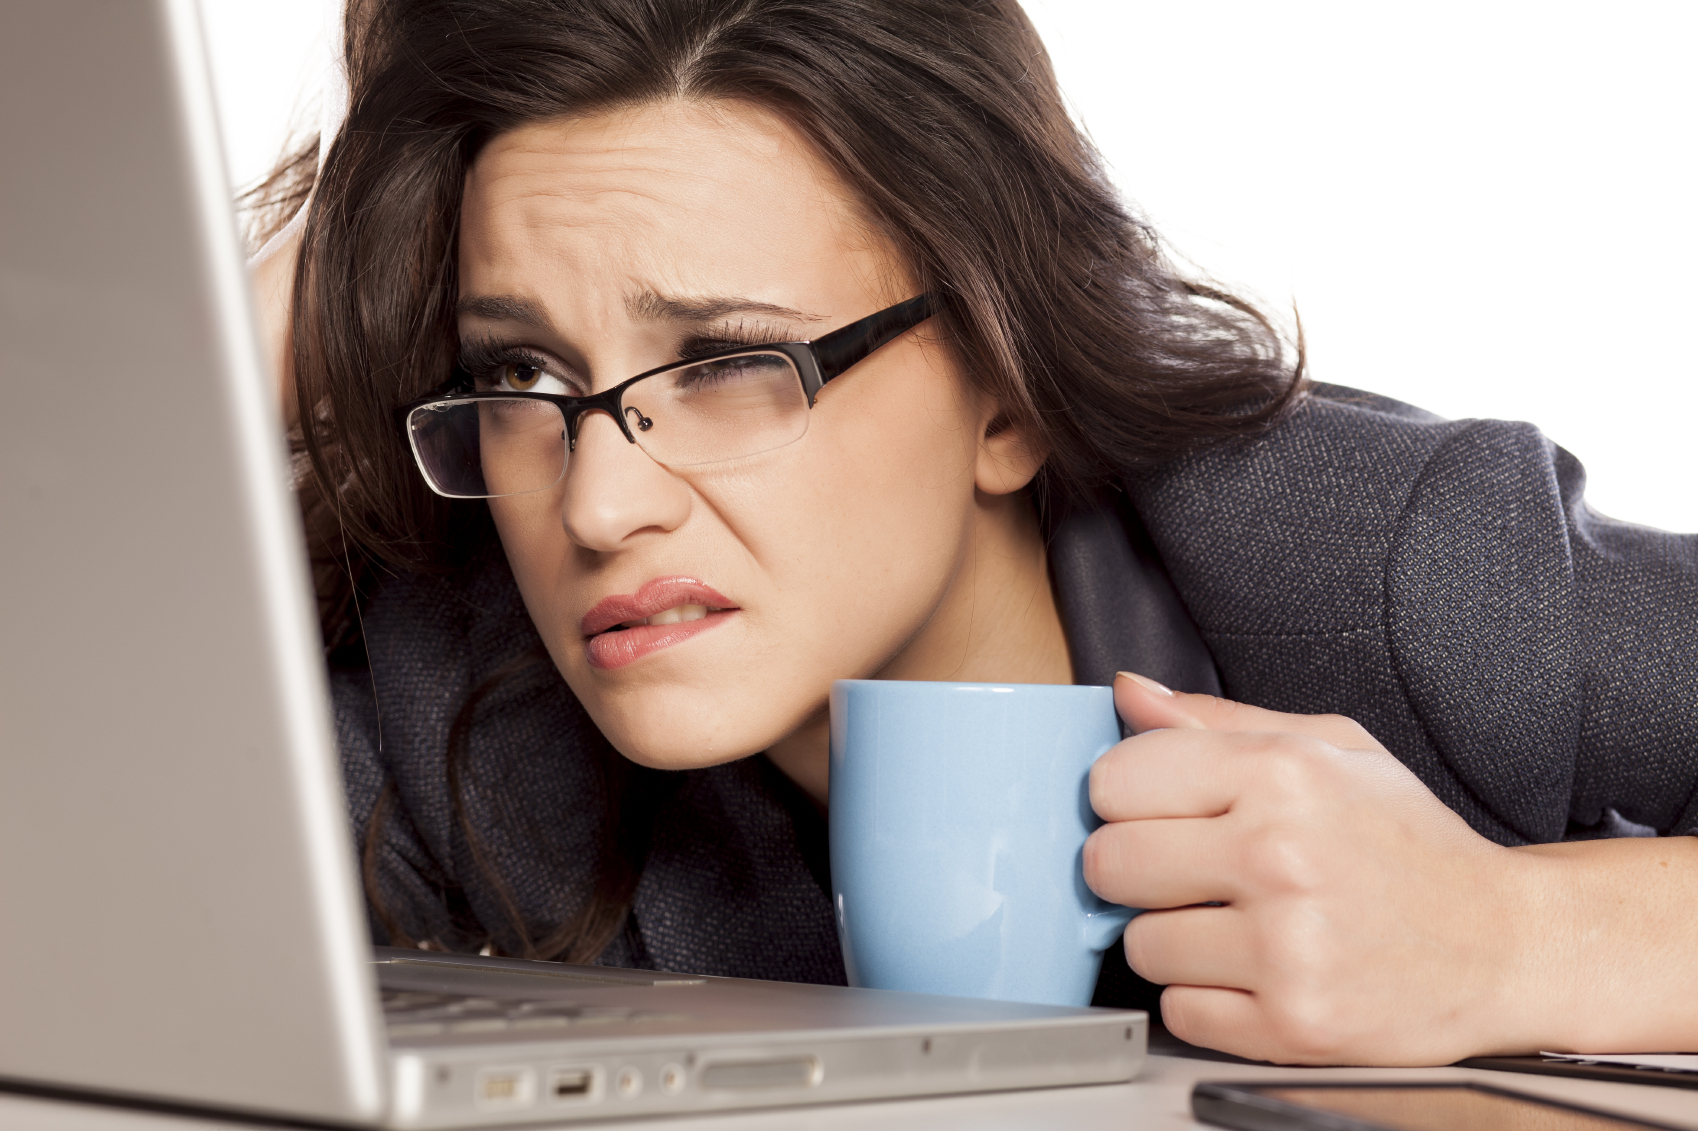 woman squinting at screen